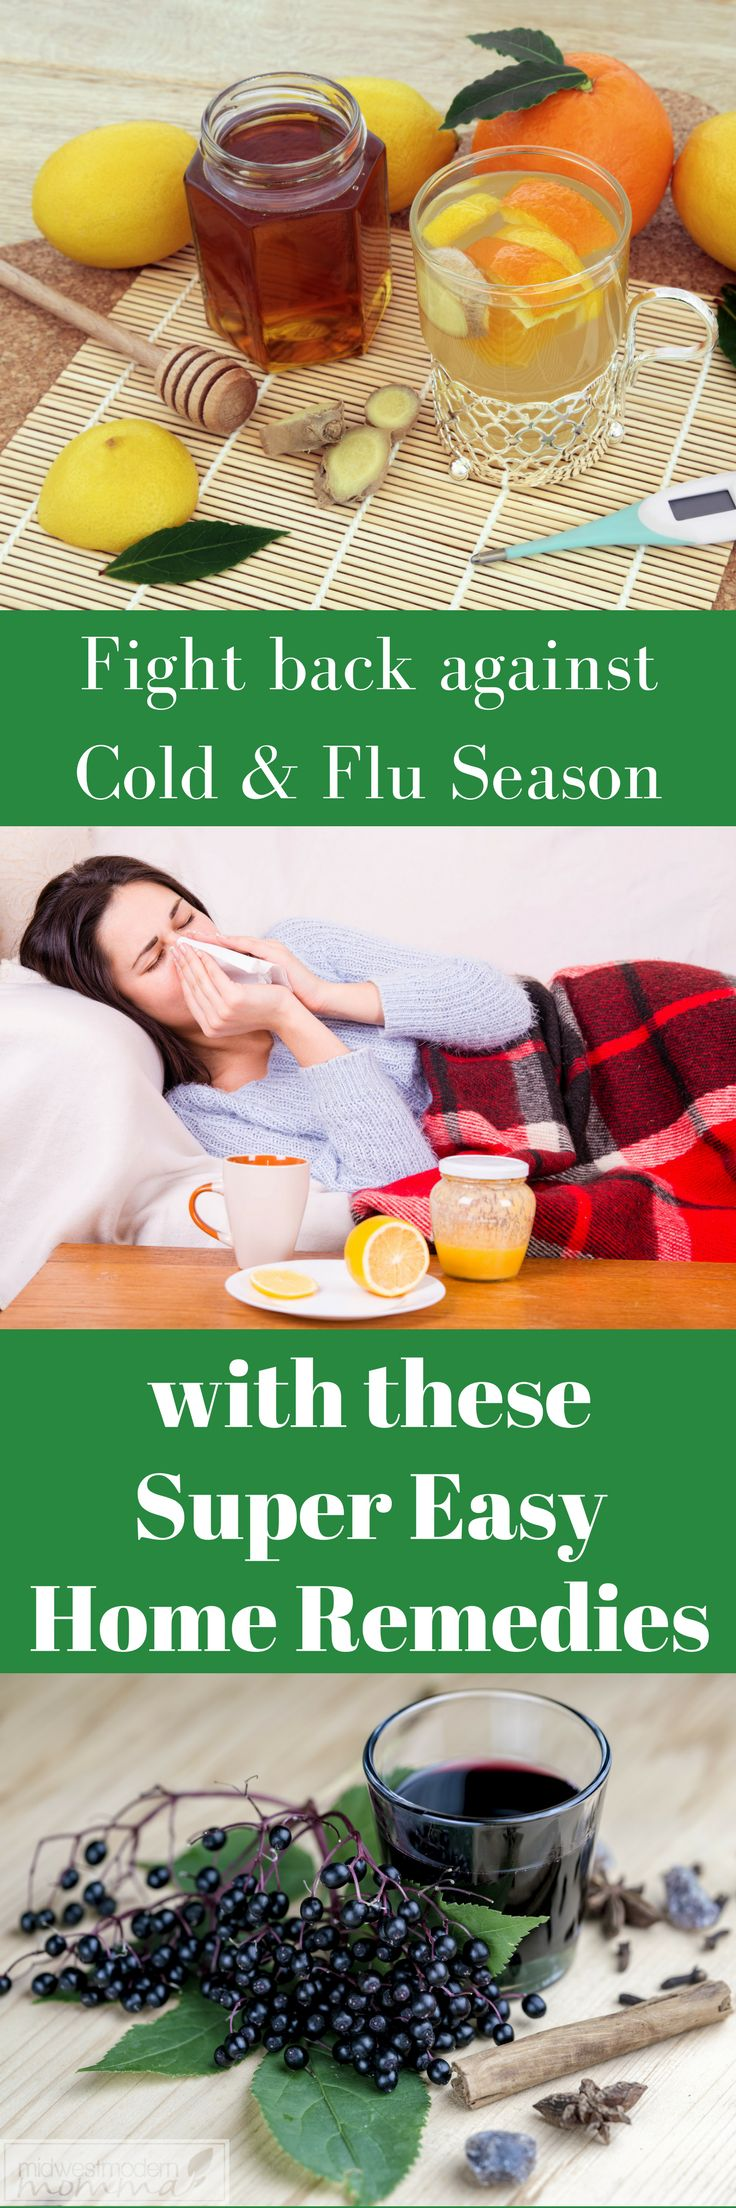 Try these 30 homemade cold & flu remedies to help boost your immune system, deal with a sore throat, and even the dreaded earache! Natural Remedies   Cold Remedies   Flu Remedies   Ear Infection #remedies #homeremedies #naturalremedies #holistic